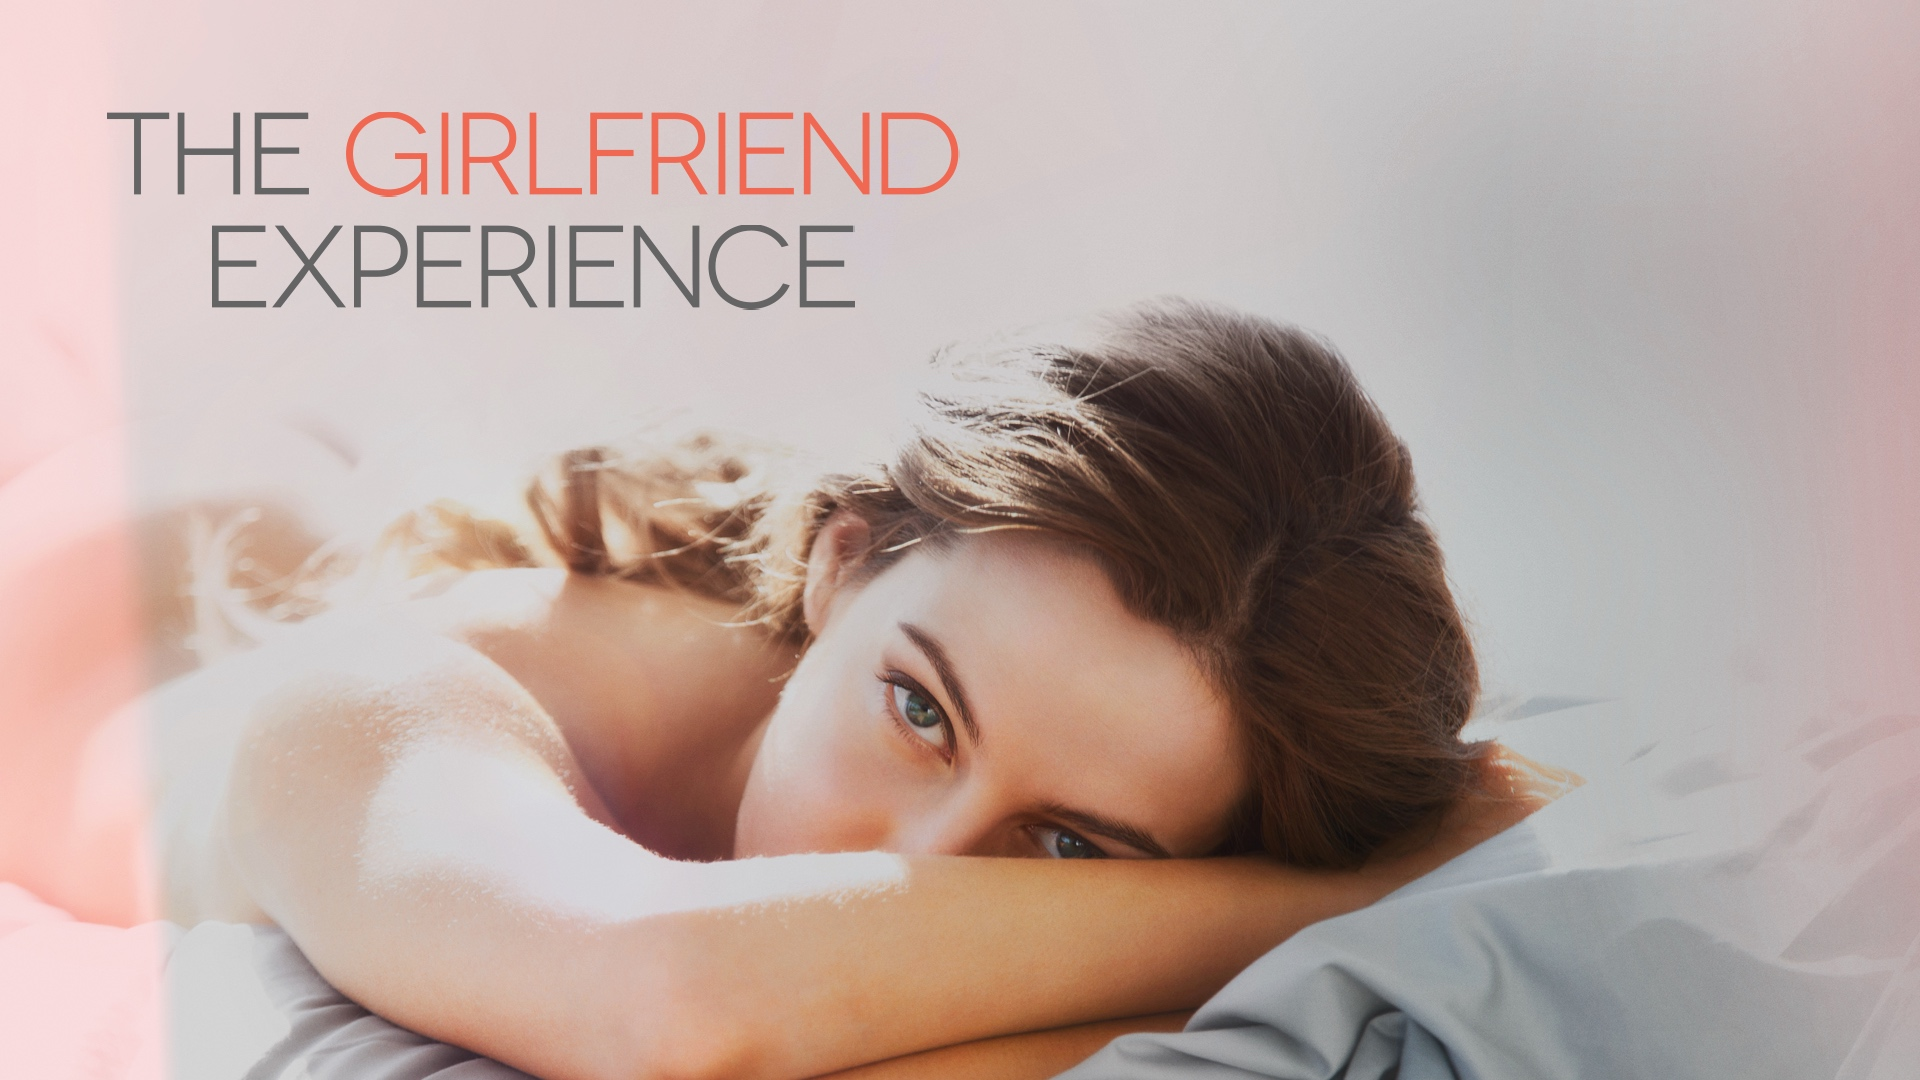 The Girlfriend Experience BluTV'de!